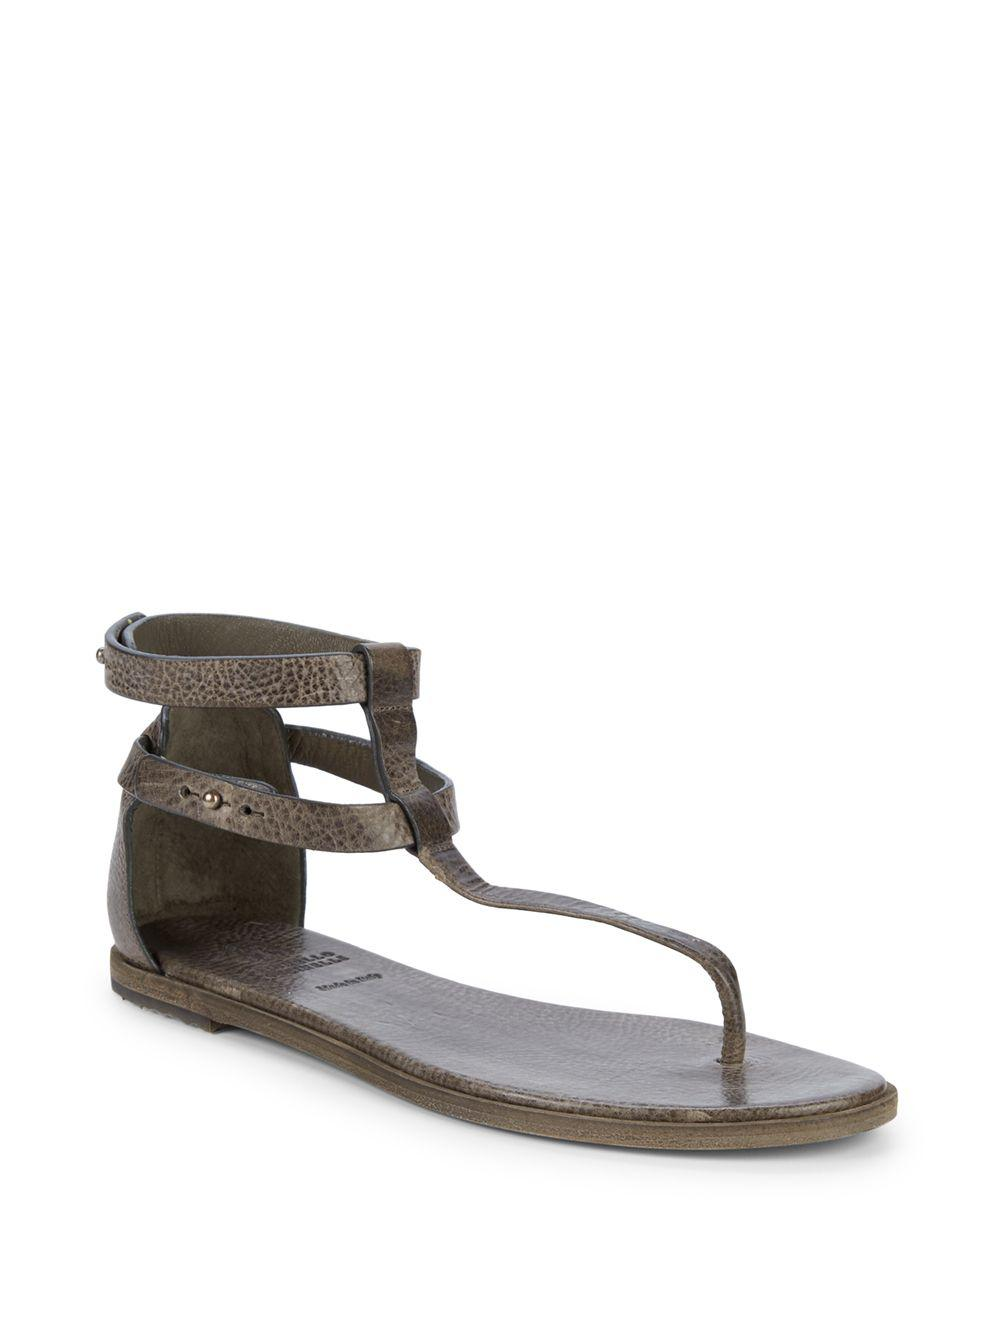 0f48cb16dae4ce Brunello Cucinelli Textured Leather Thong Sandals - Lyst